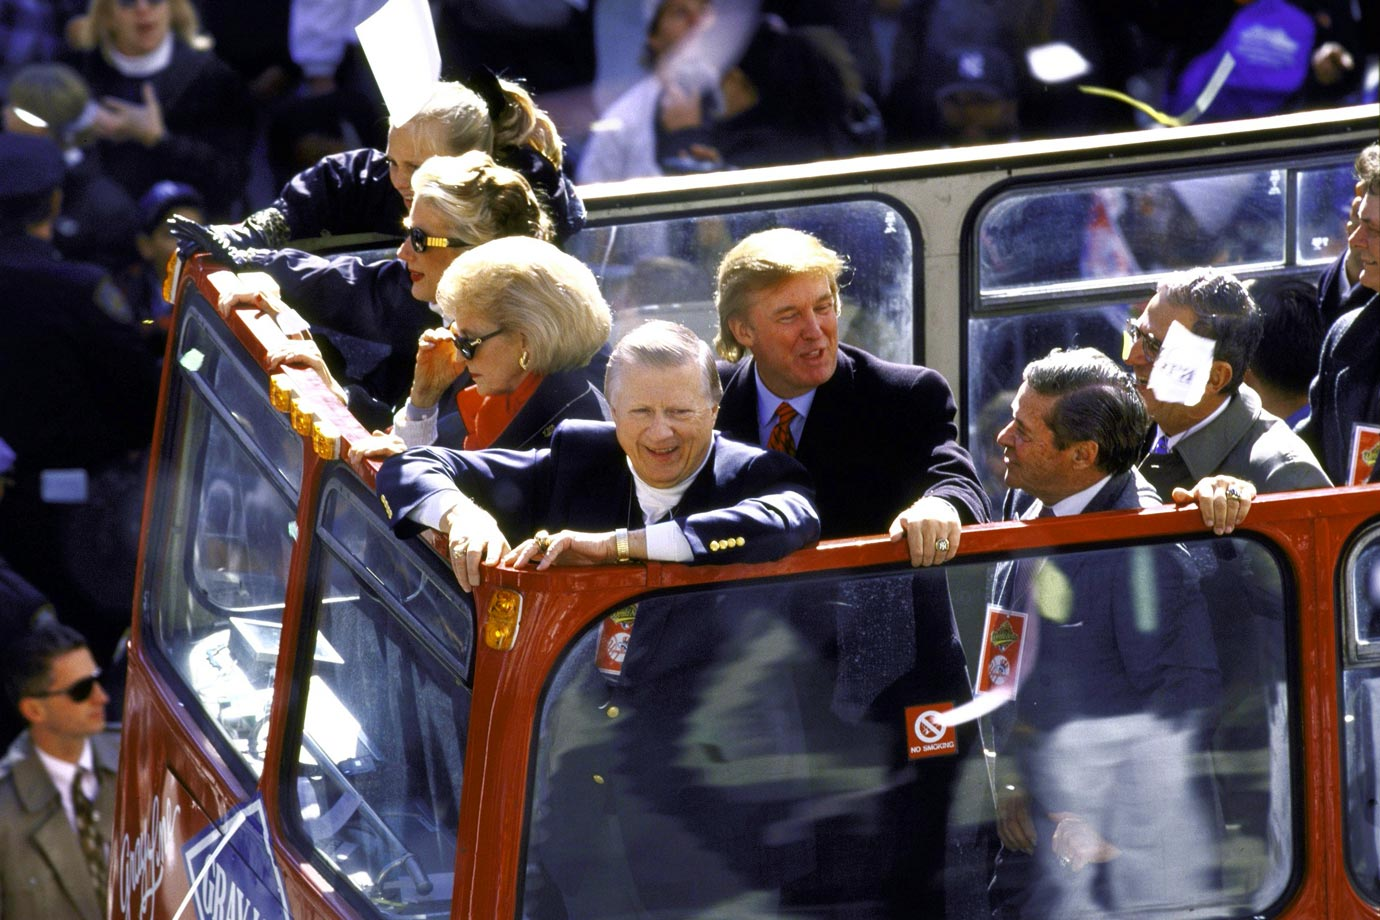 George Steinbrenner, his wife Joan and Donald Trump celebrate aboard a bus during a ticker tape parade on Broadway for the New York Yankees' World Series victory, on Oct. 23, 1998 in New York City.